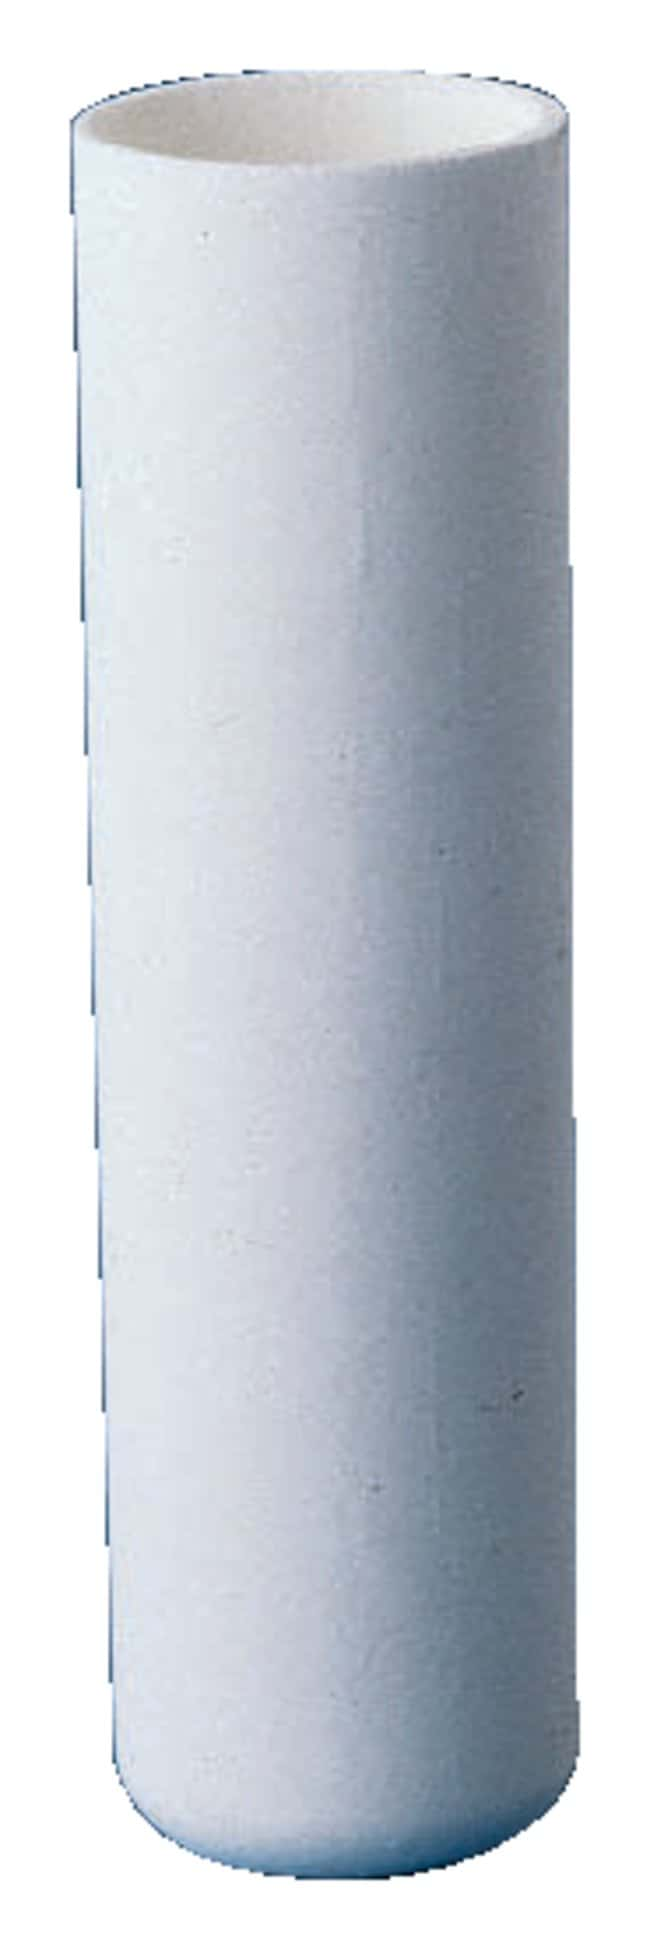 Saint-Gobain ALUNDUM™ Extraction Thimbles